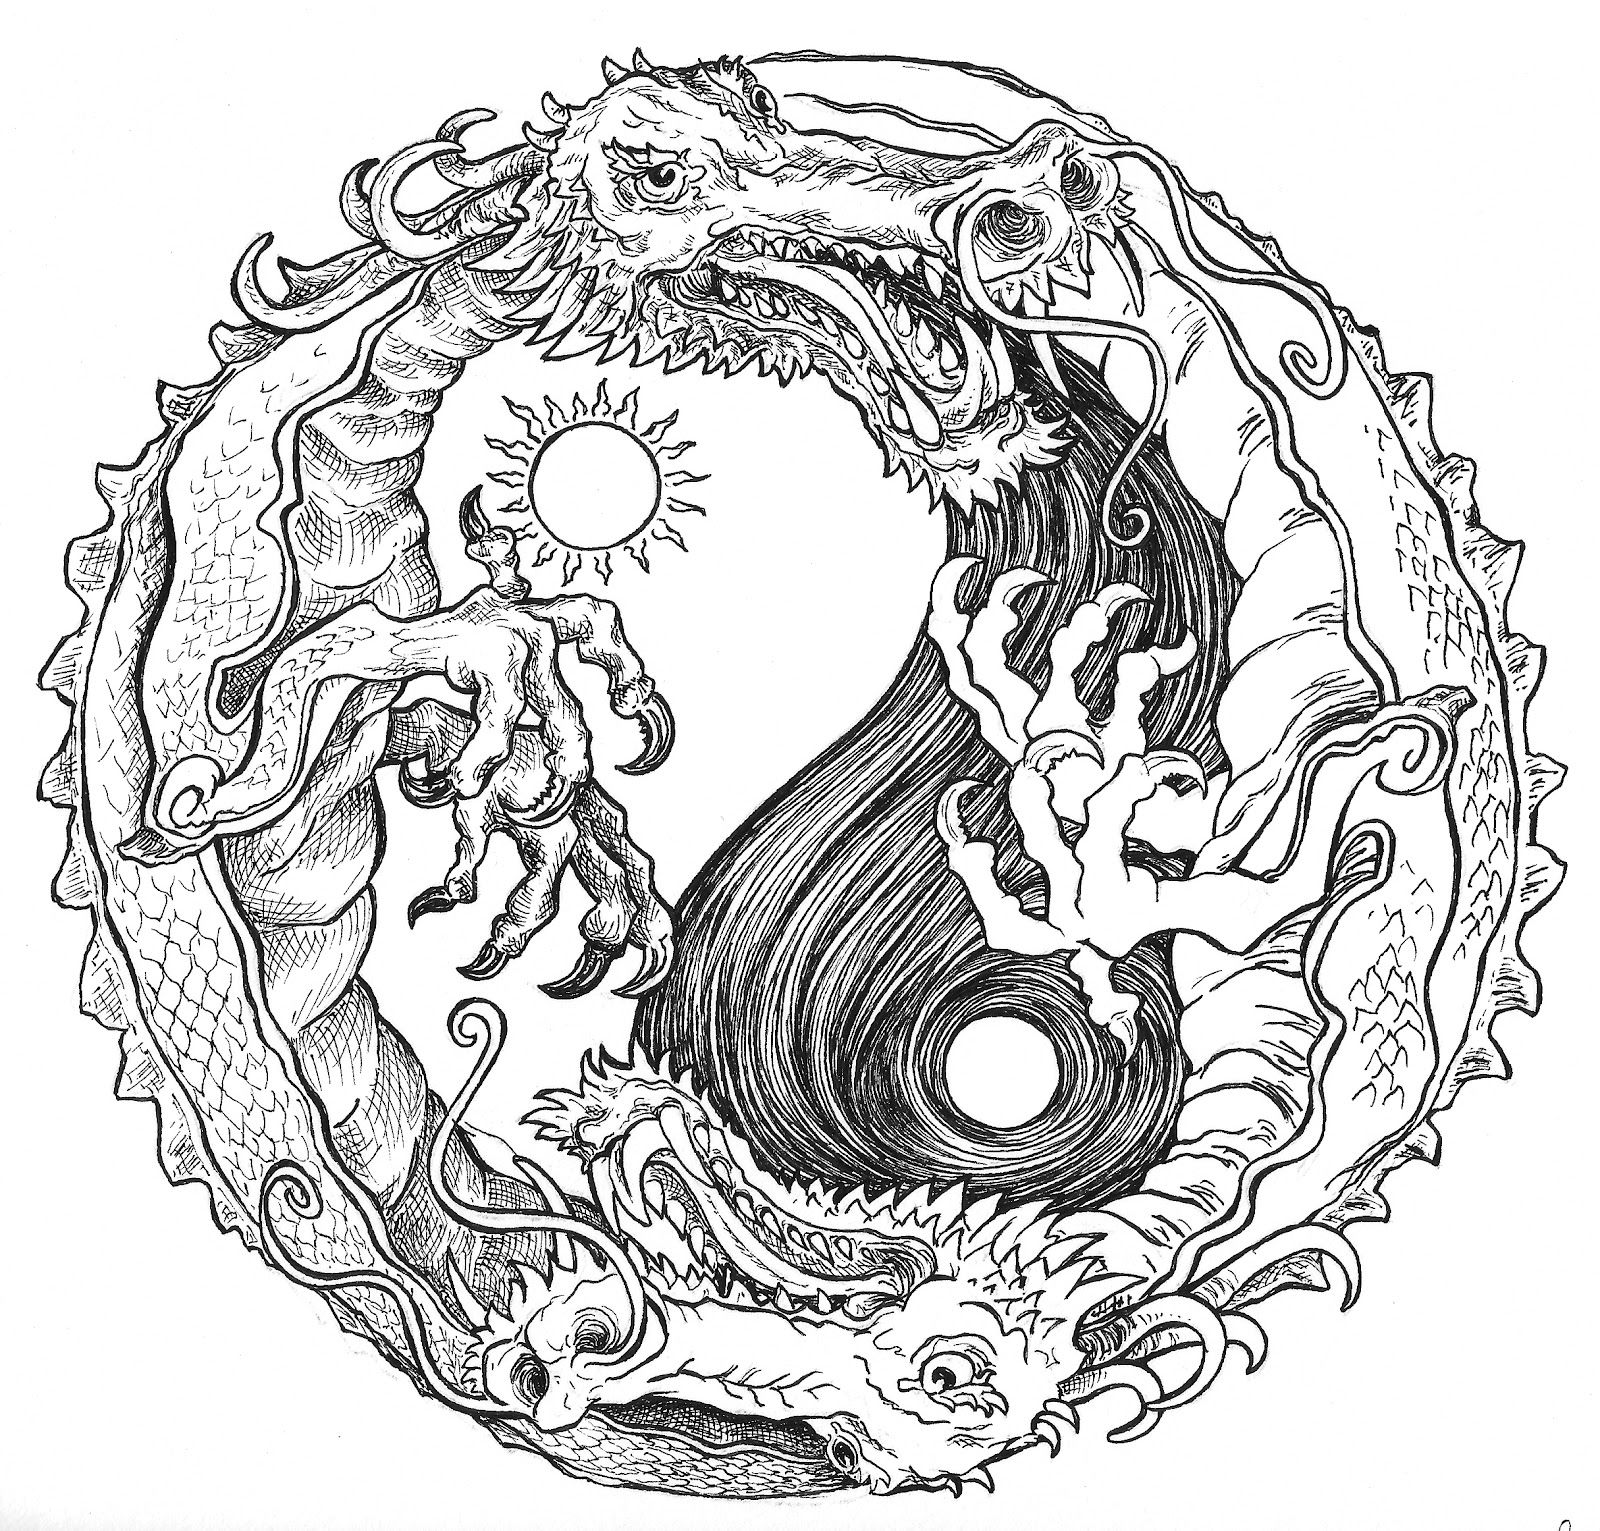 printable advanced coloring pages - sun and moon dragon yin yang coloring pages colouring